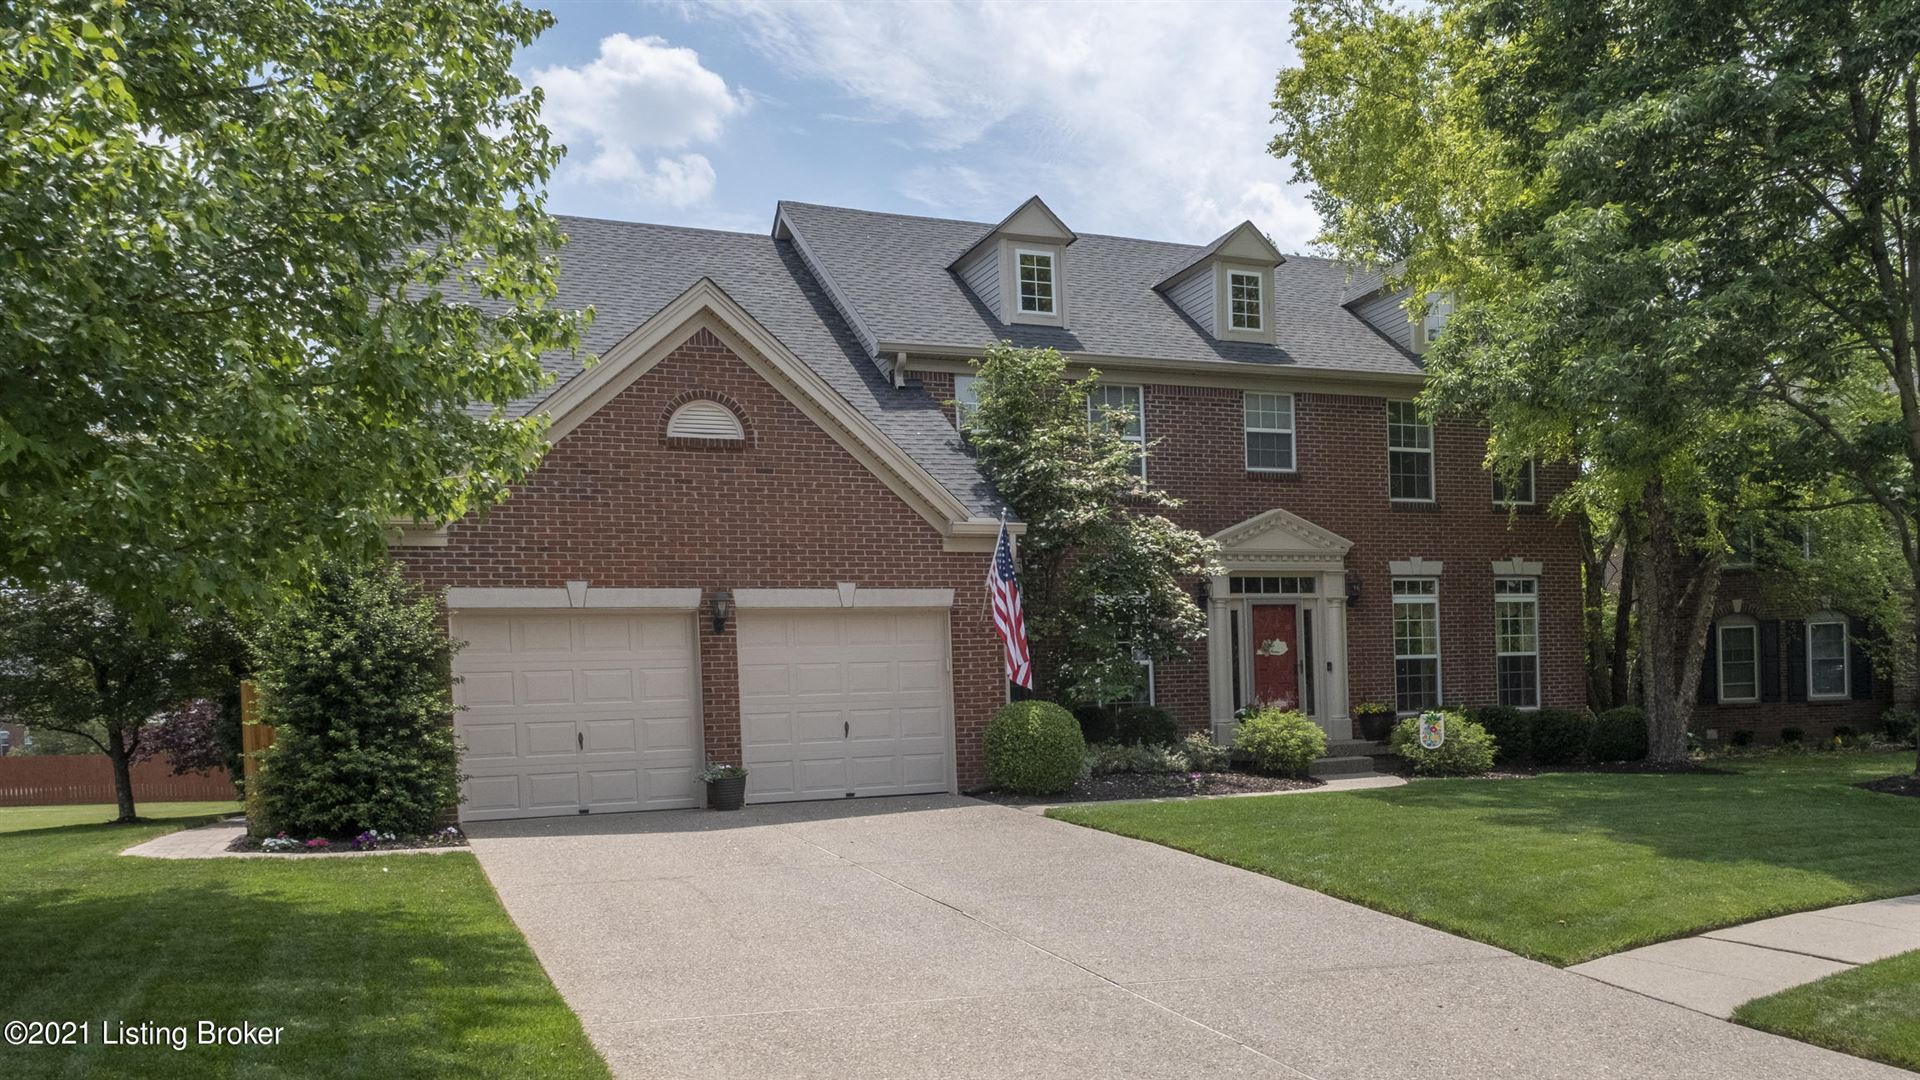 Photo for 4103 Buttonbush Meadow Ct, Louisville, KY 40241 (MLS # 1587251)